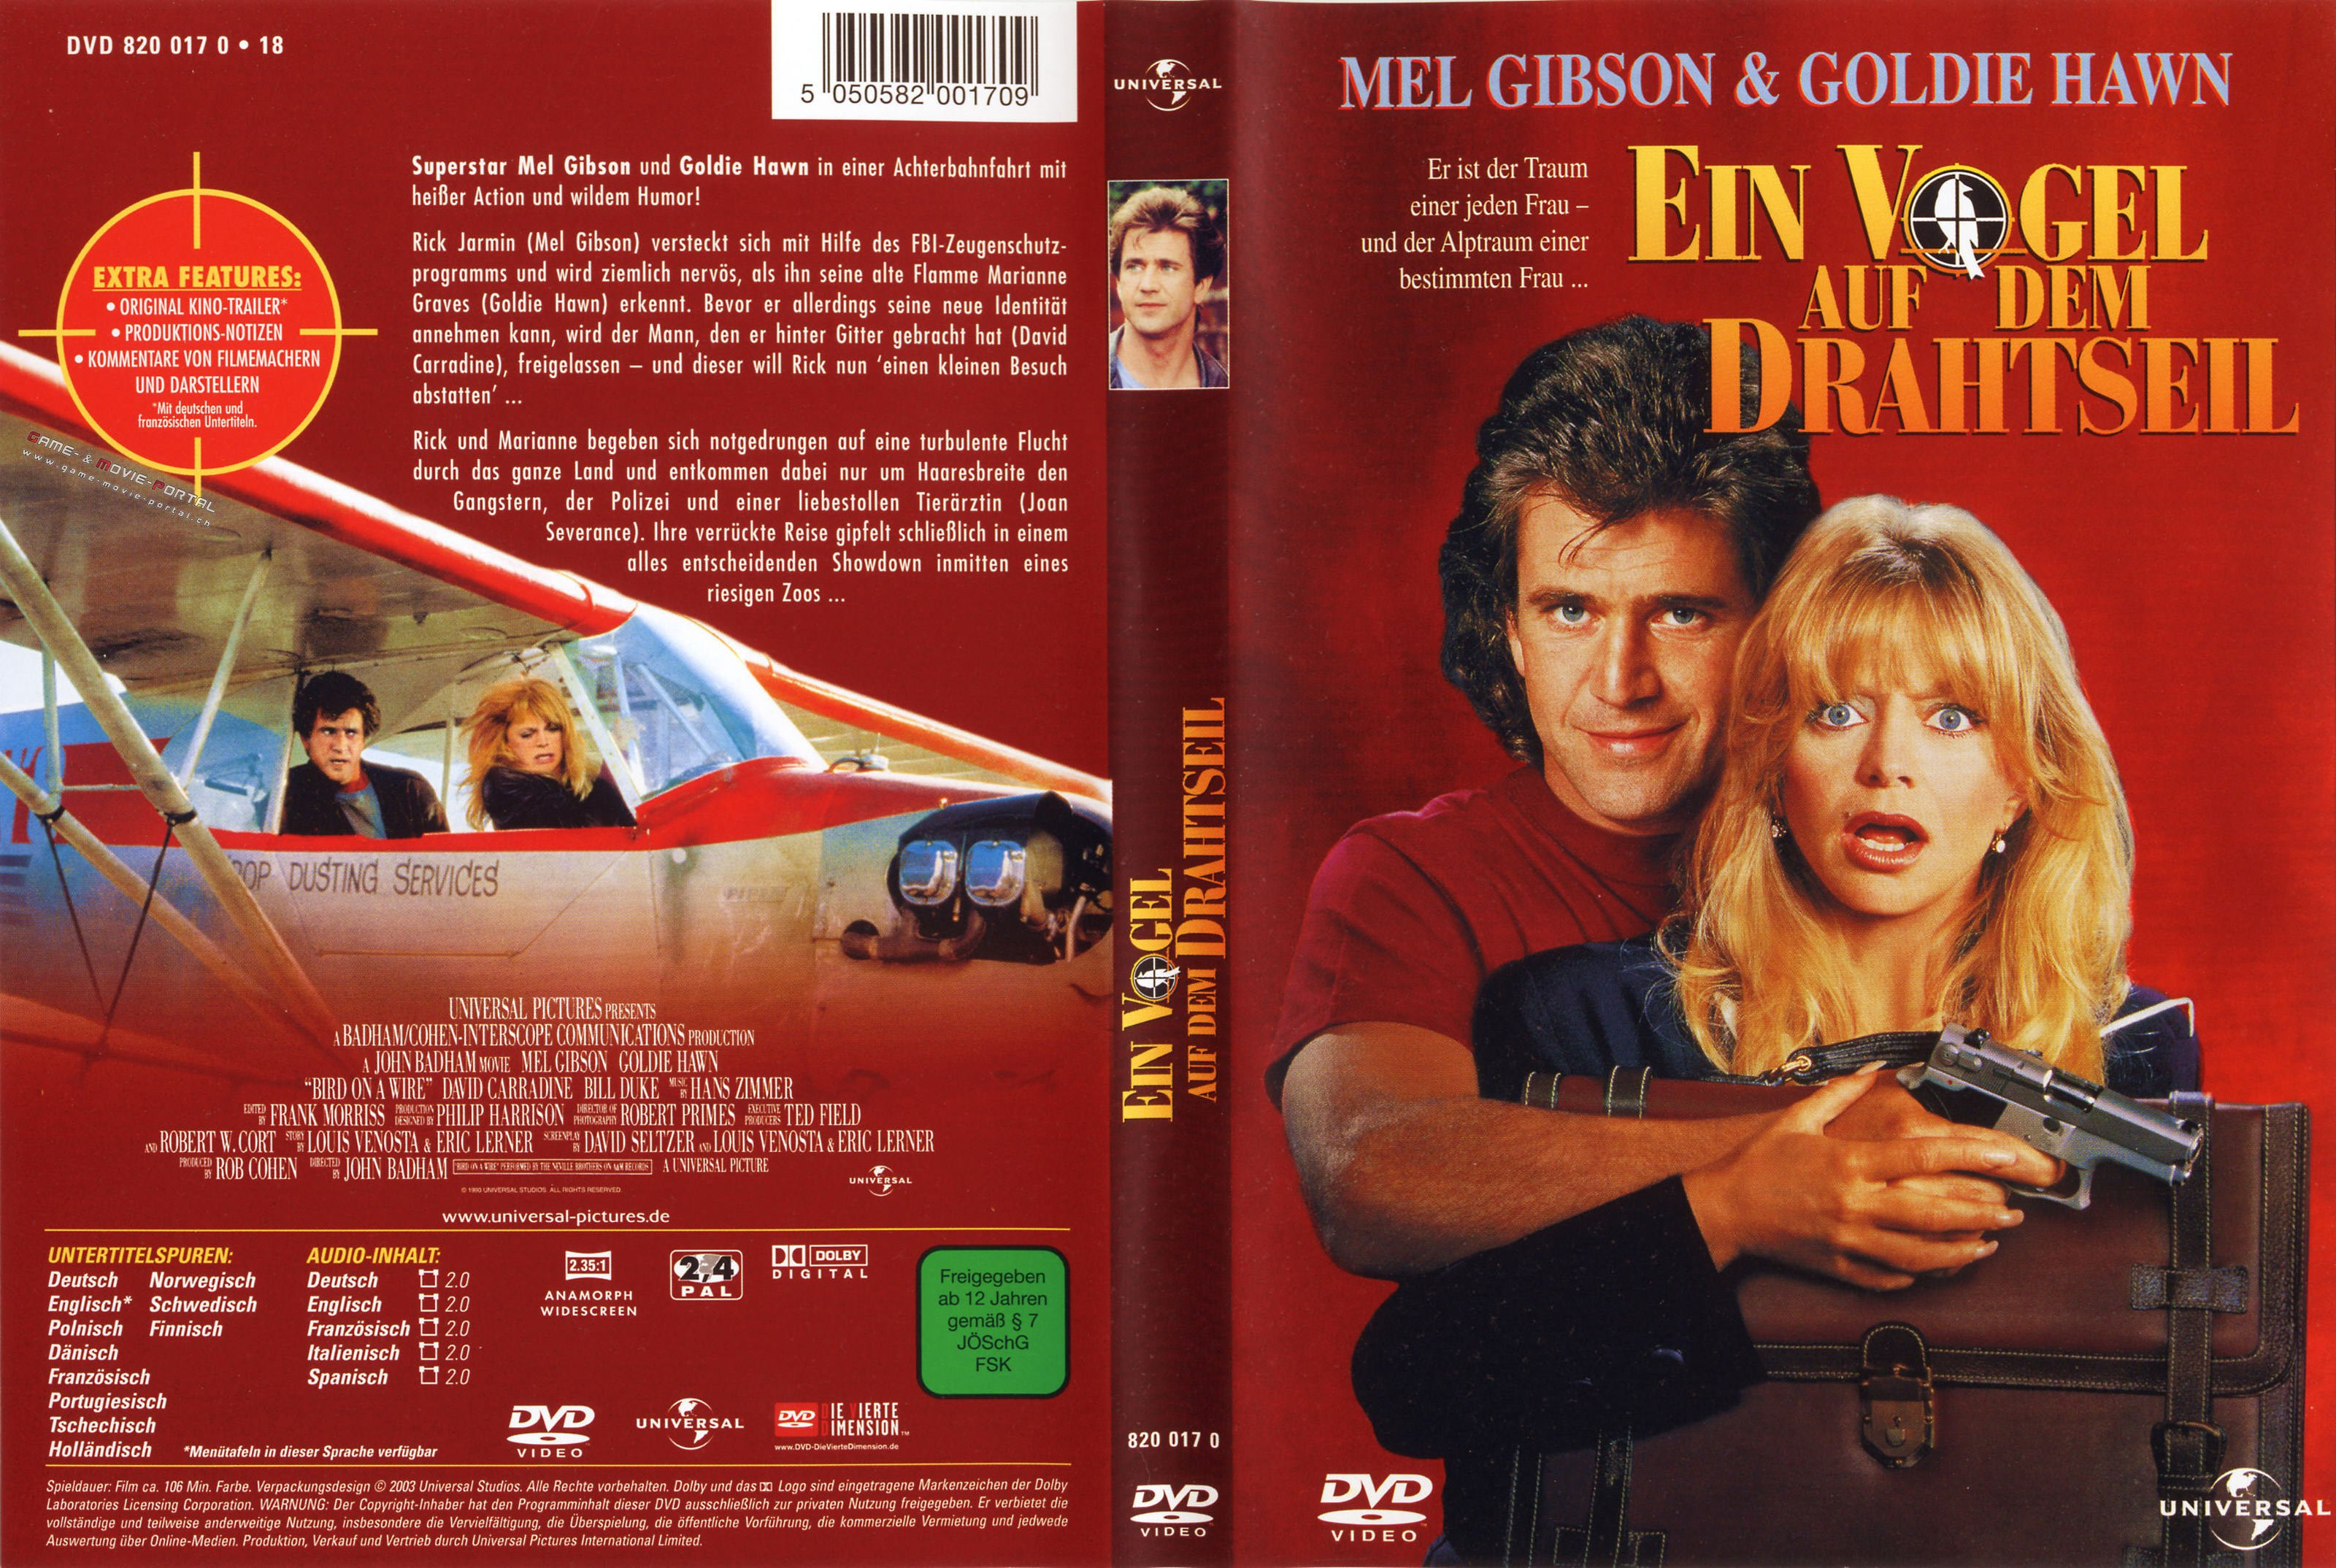 DVD Covers | German DVD Covers | Page 306